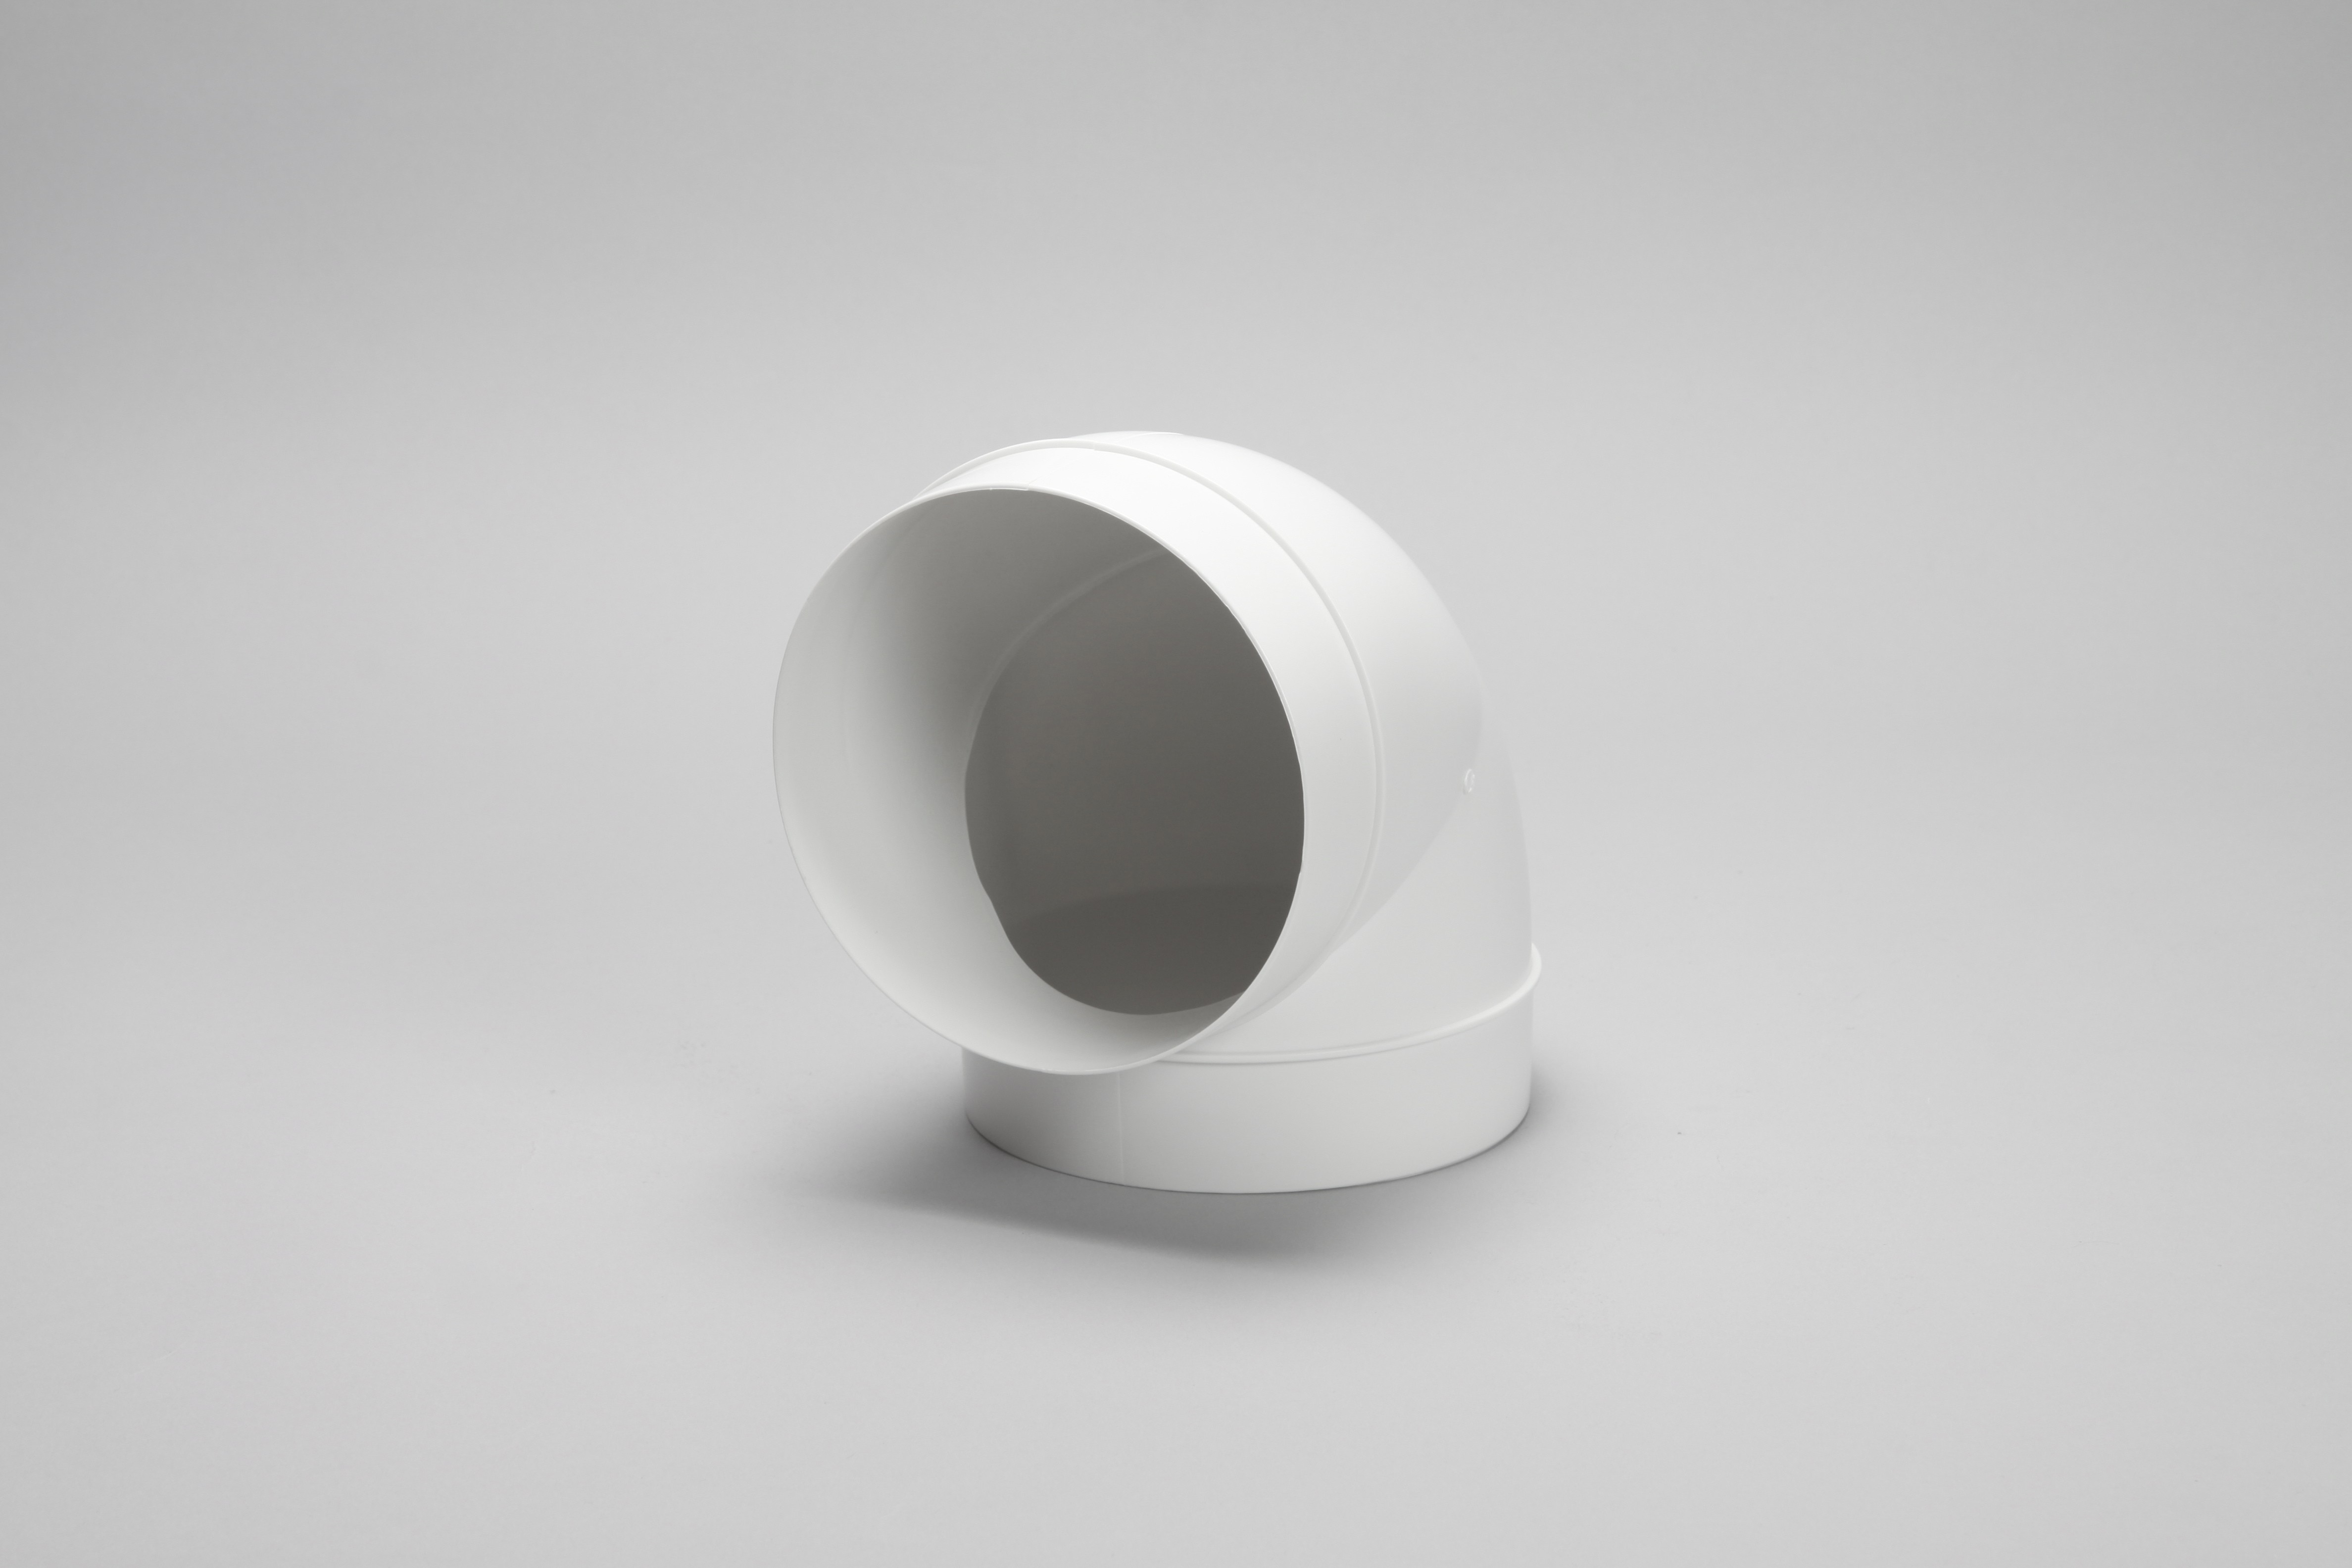 150mm round ducting pipe 90 degree angle bend